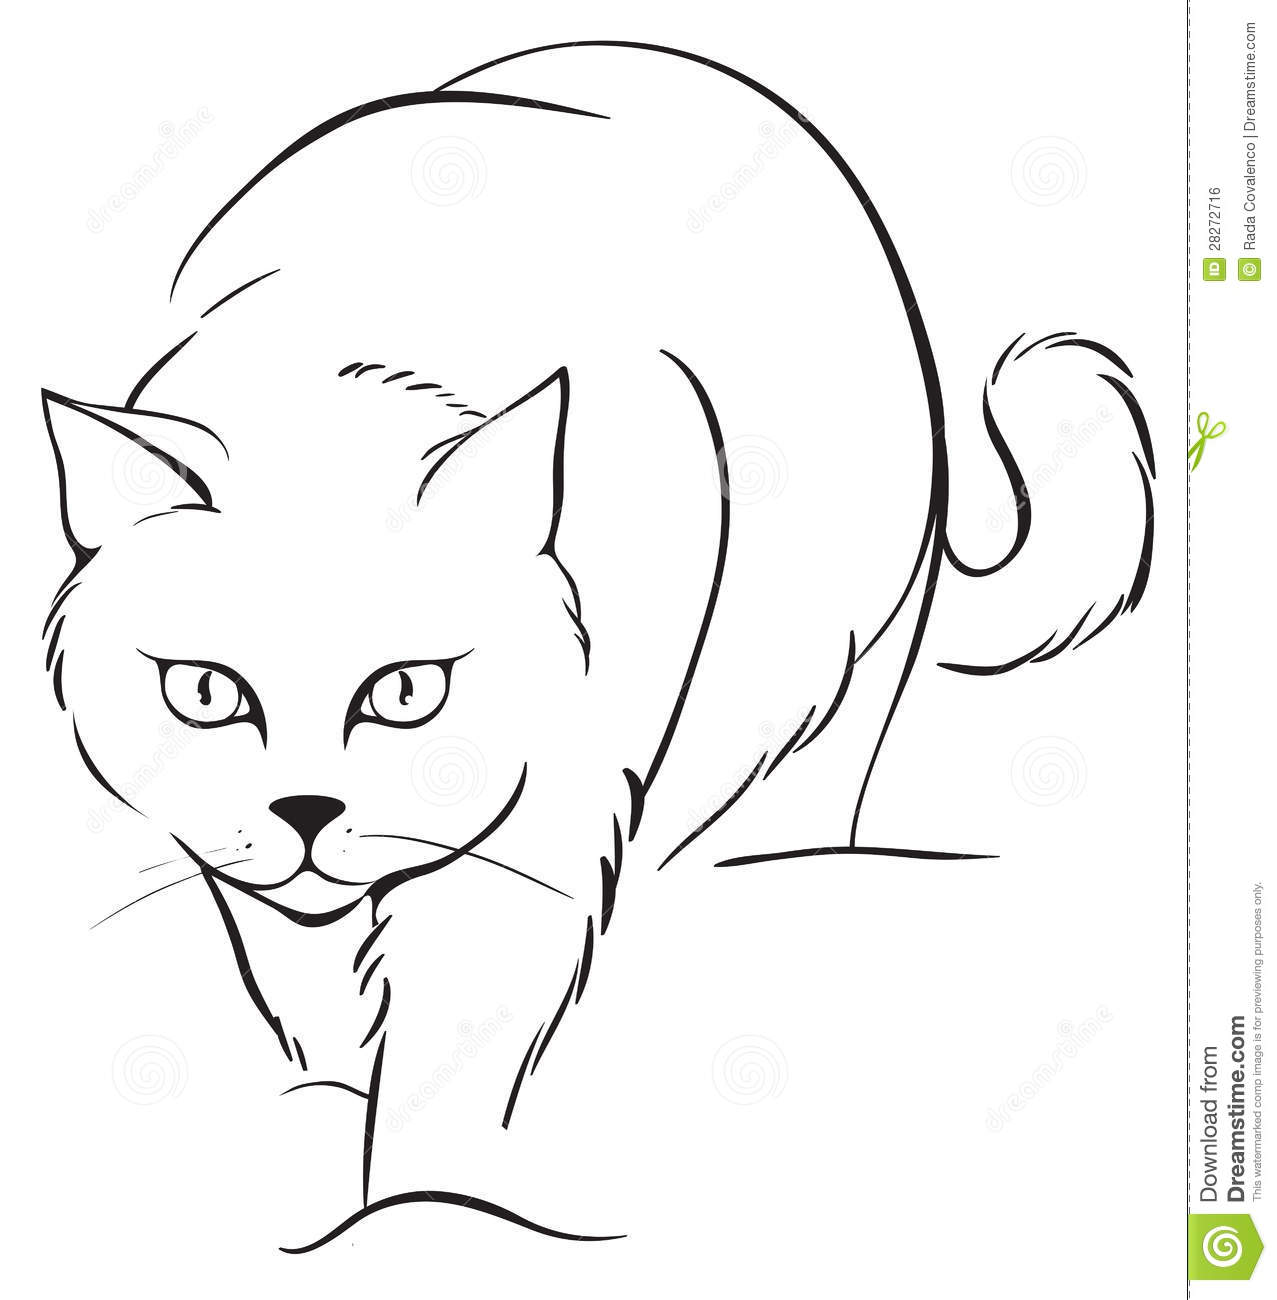 Marvelous Download Outline Cat Stock Vector. Illustration Of Cartoon, Kitten    28272716